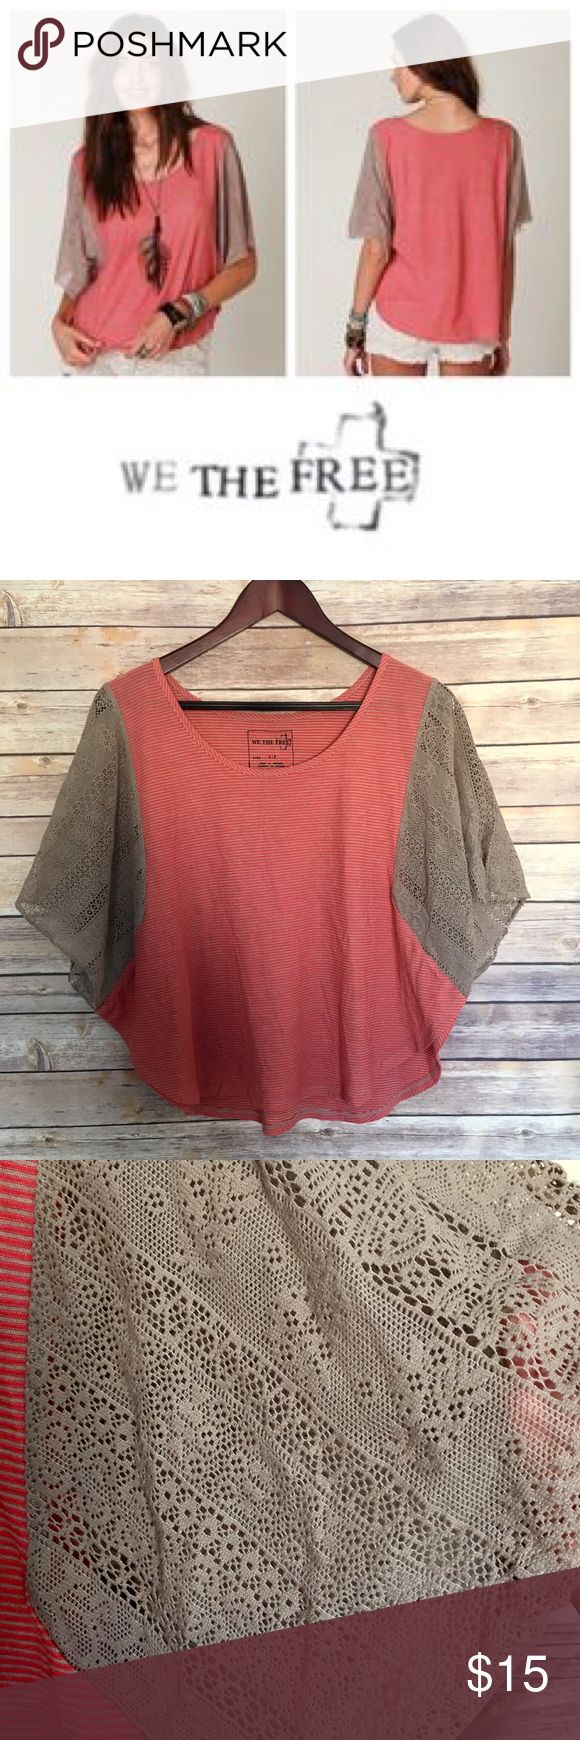 """We The Free Free People Lace Striped Batwing Top We The Free Free People striped batwing top with laced detail.  Women's size small.  Has lace detail on batwing sleeves, beige/brown stripes on top.  Body is 60% cotton, 40% polyester.  Lace is 80% nylon, 10% spandex.  Pre-owned, great condition.  Armpit to armpit- 15"""" length- 22.5"""" Free People Tops"""